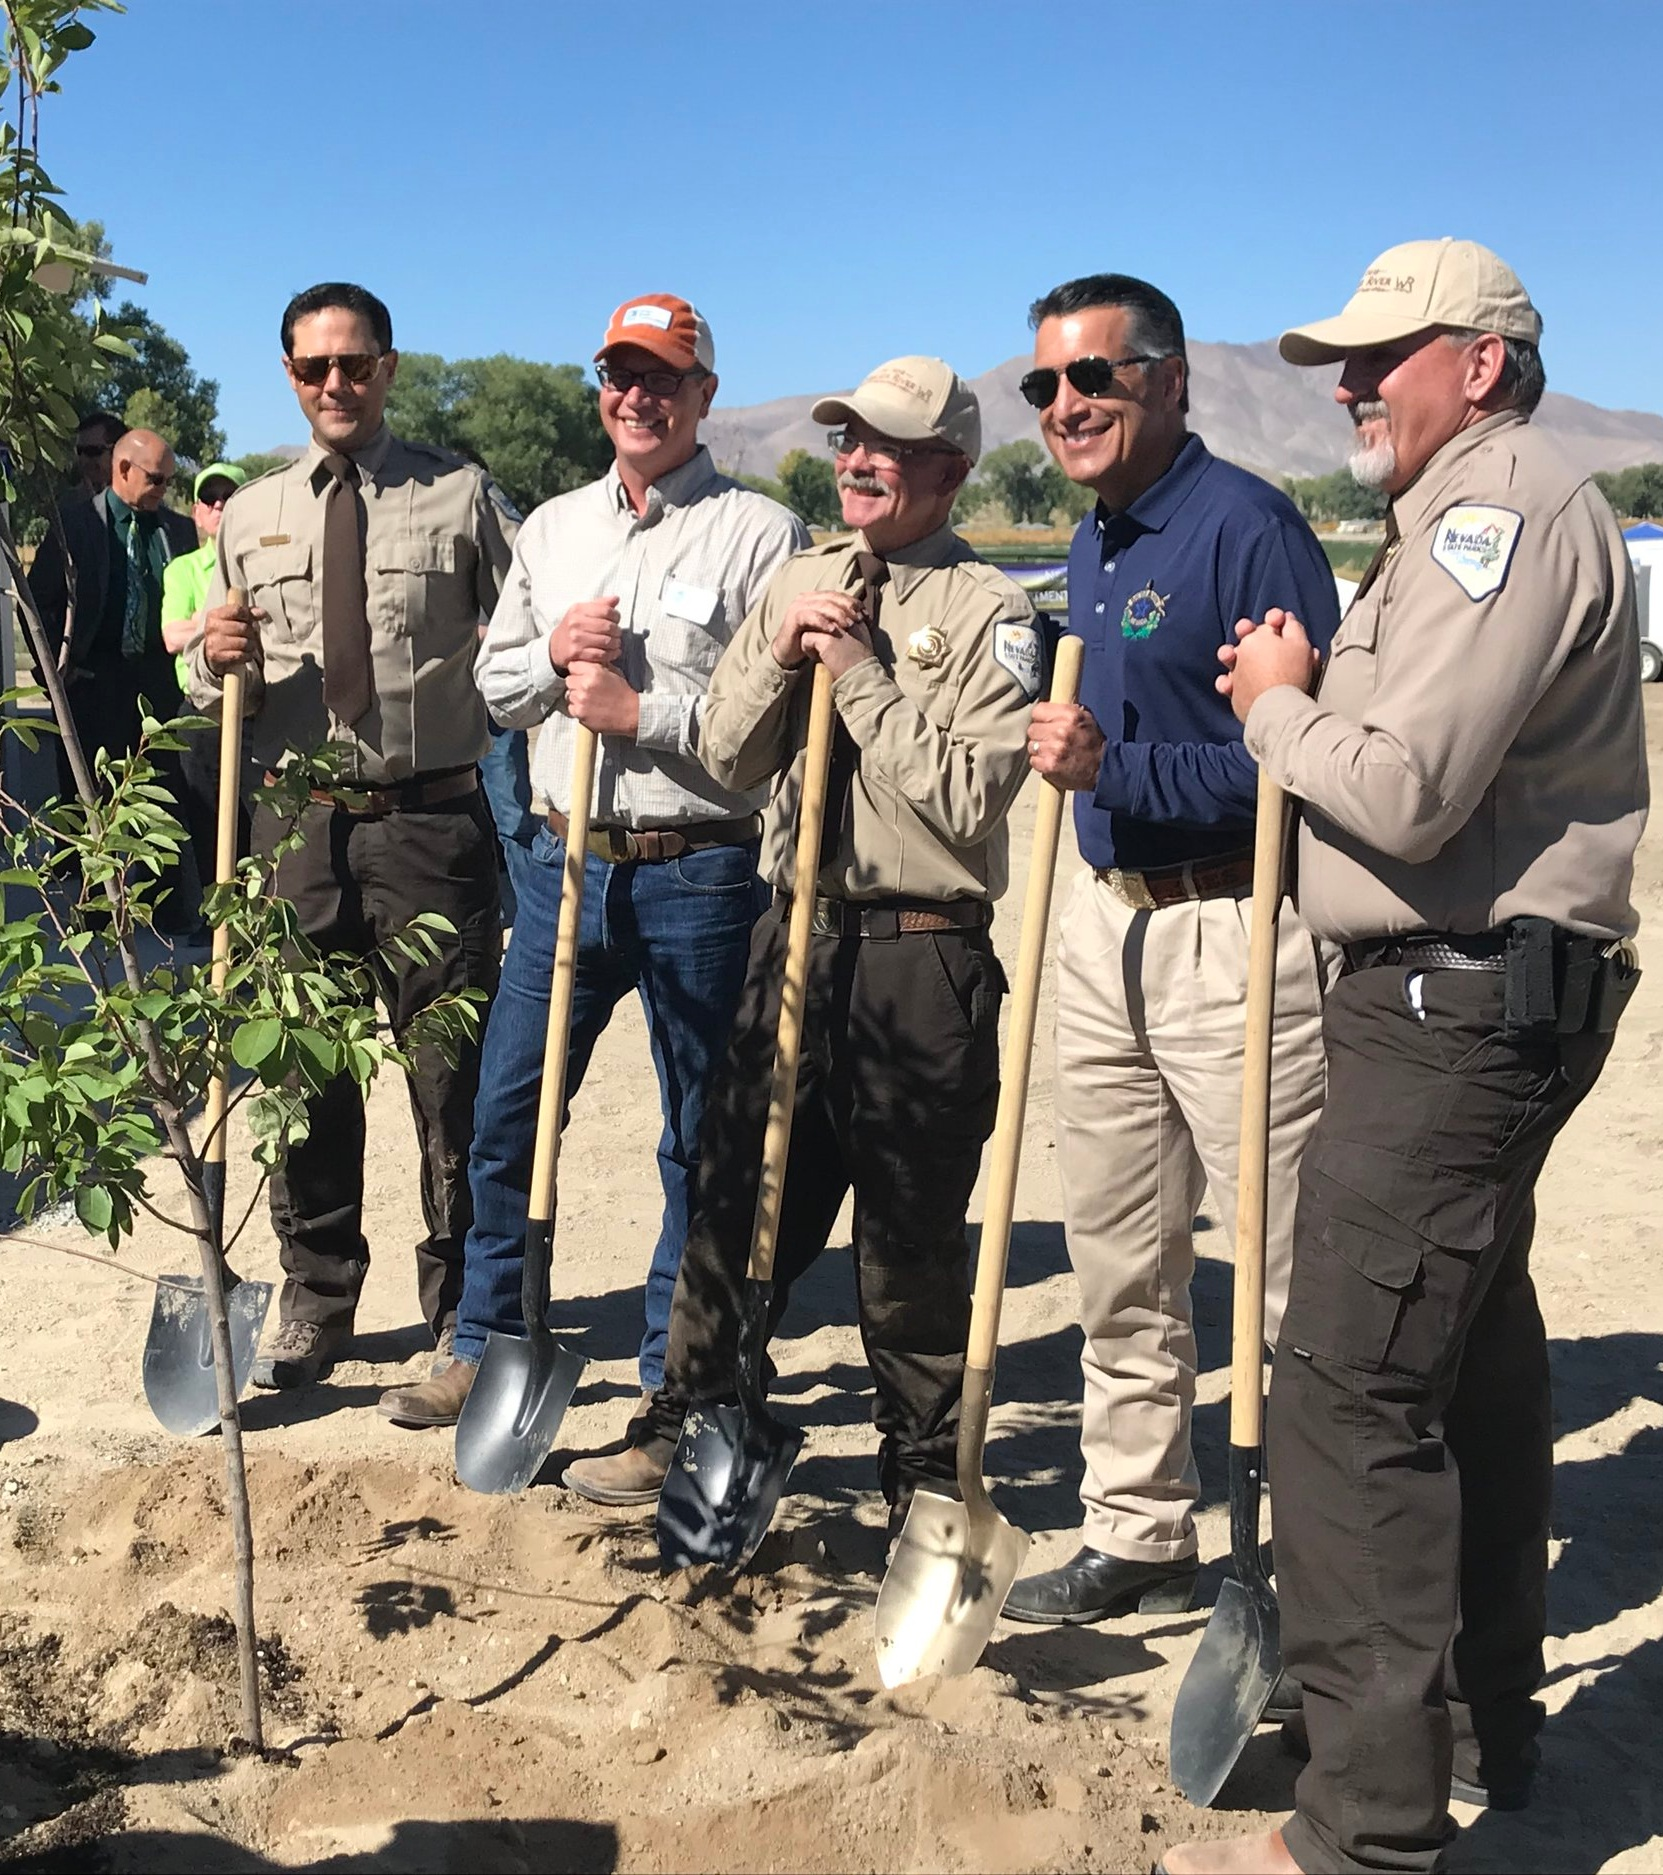 Planting a tree during the Walker River State Recreation Area ribbon cutting.